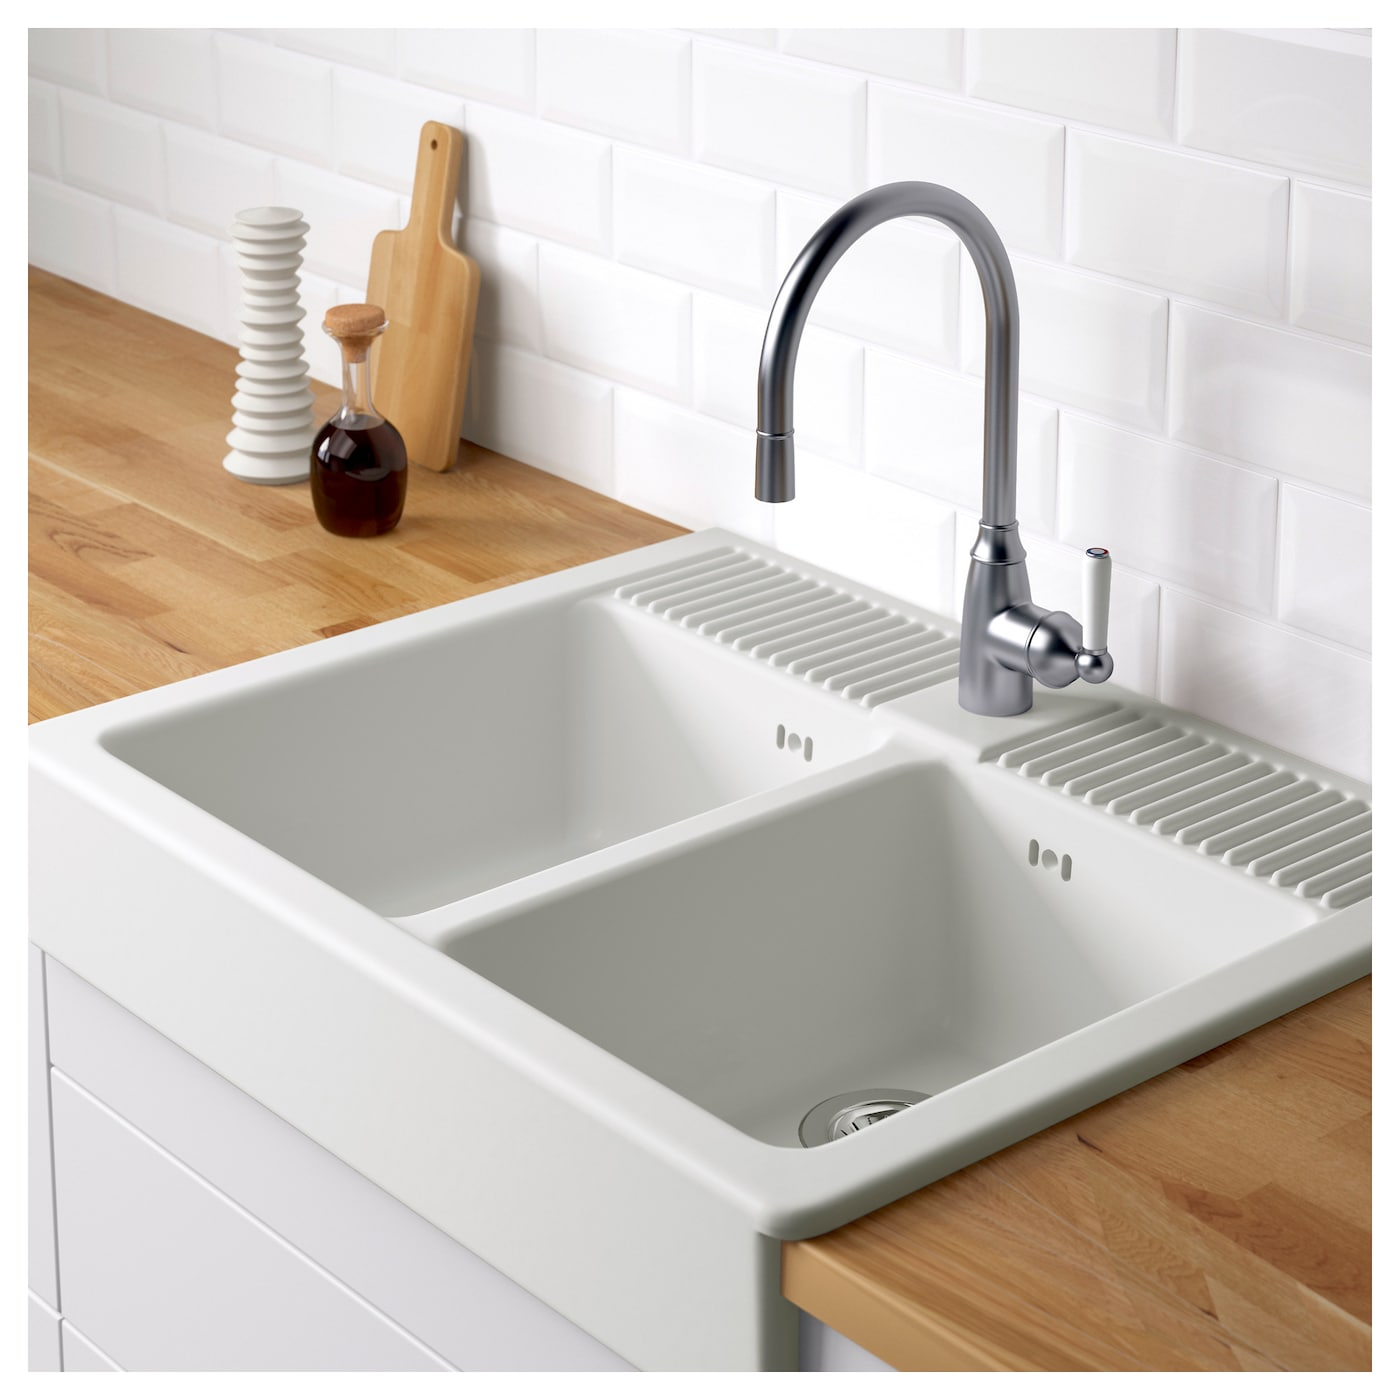 IKEA DOMSJÖ double bowl 25 year guarantee. Read about the terms in the guarantee brochure.